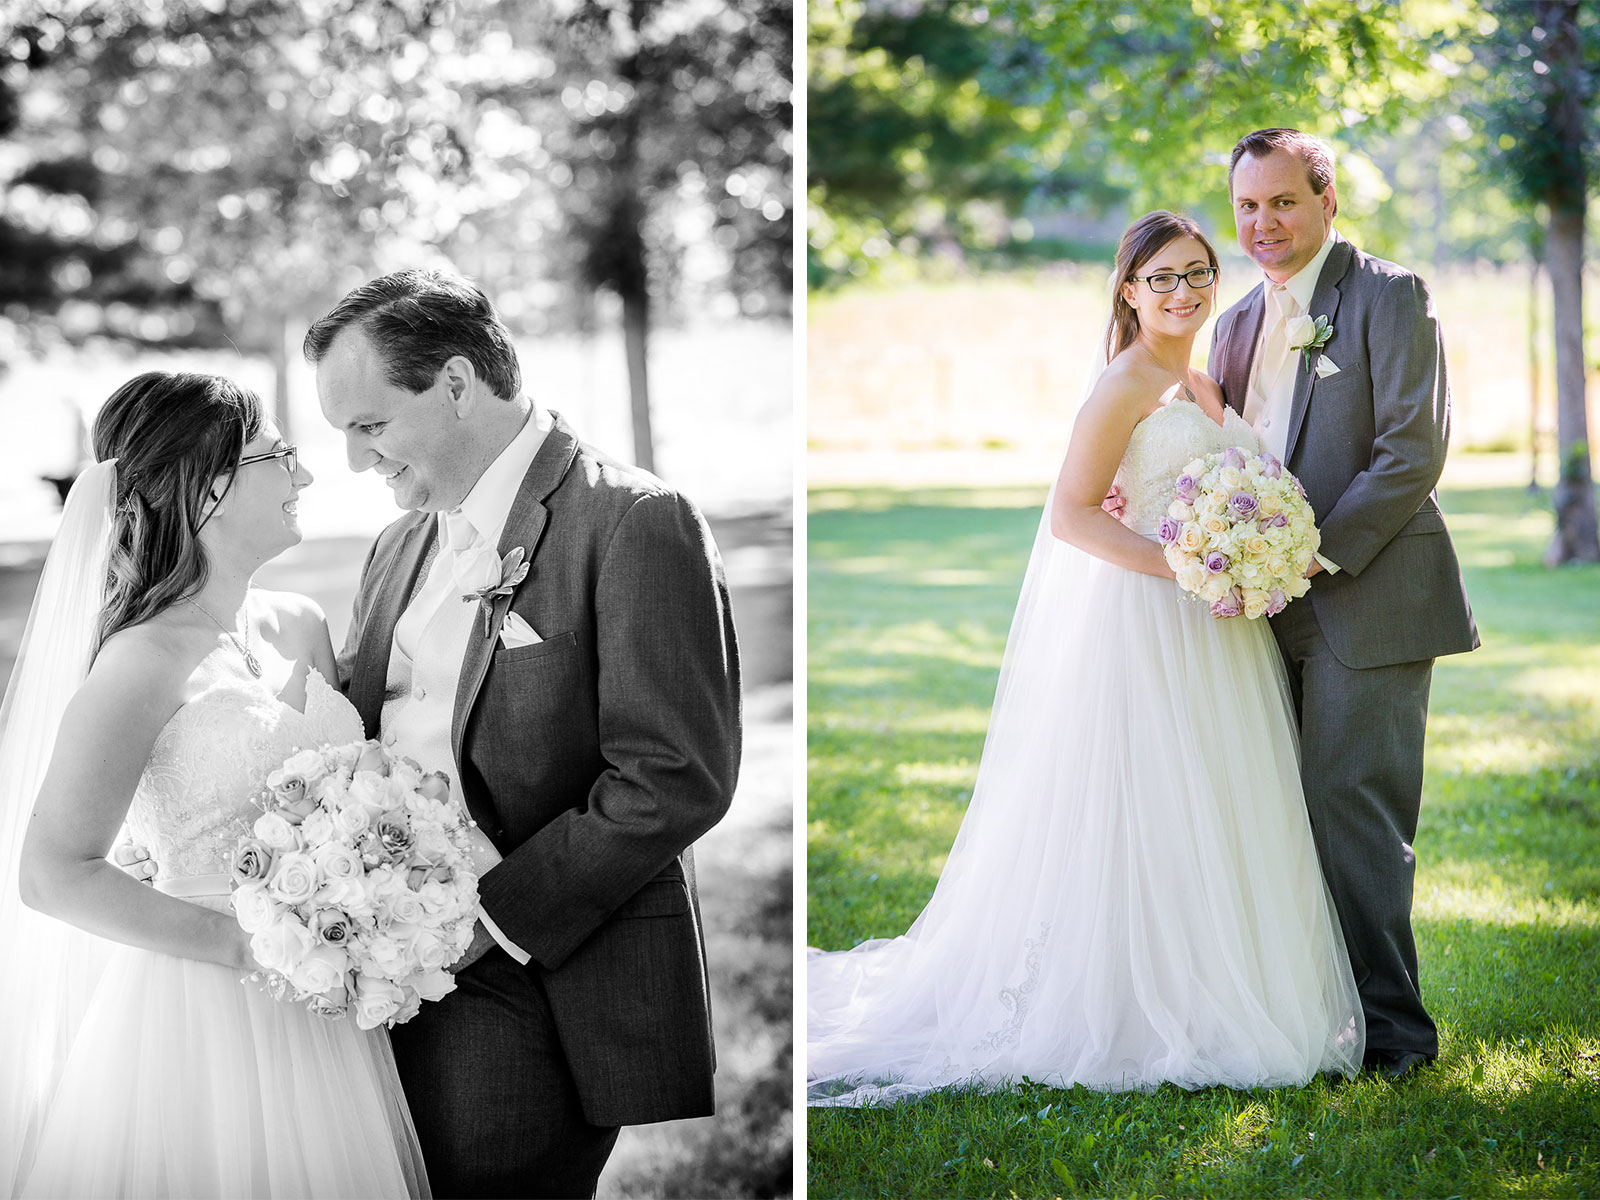 Eric_and_Christy_Photography_Blog_Julie_Adam_Wedding-28-29